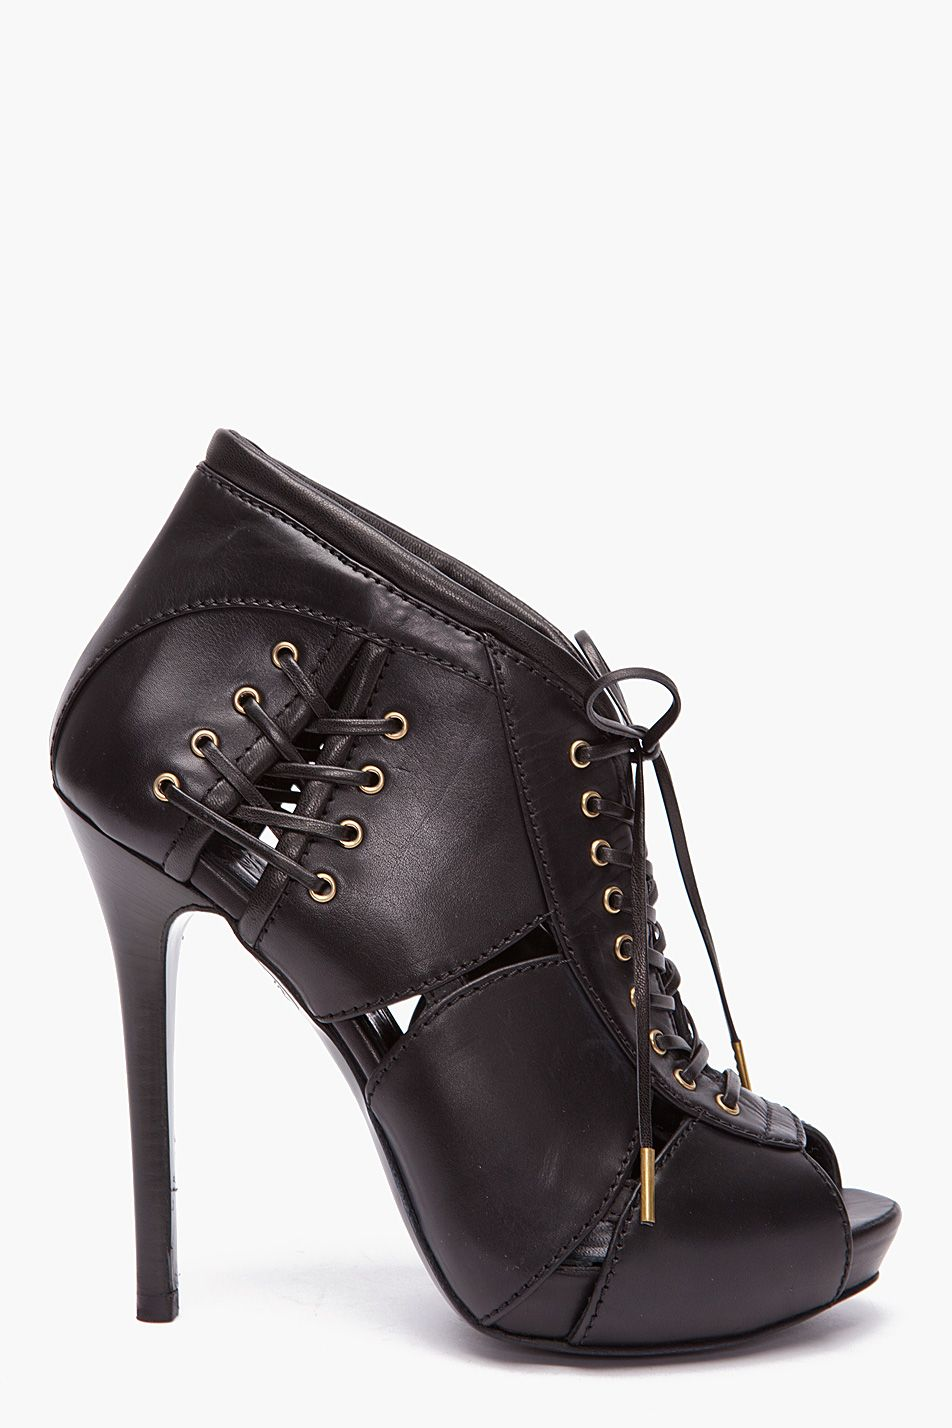 McQ Alexander McQueen Black 'For Walking' Ankle Boots W9c8B